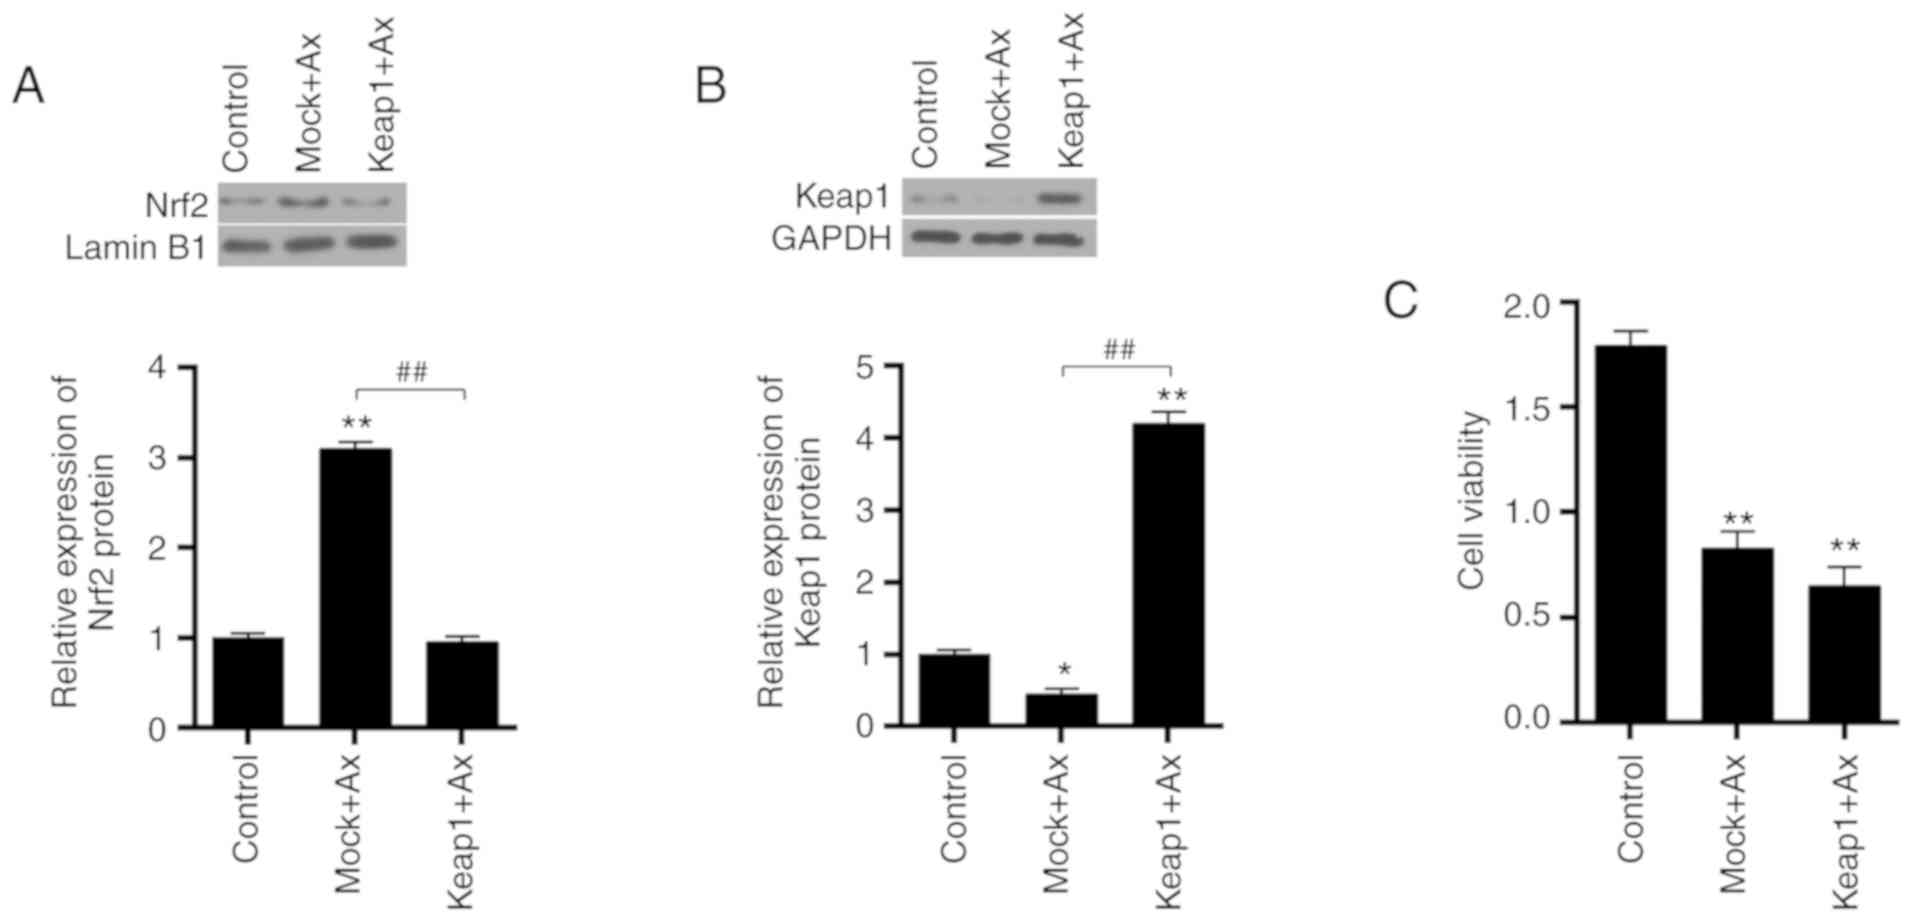 Downregulation of Keap1 contributes to poor prognosis and